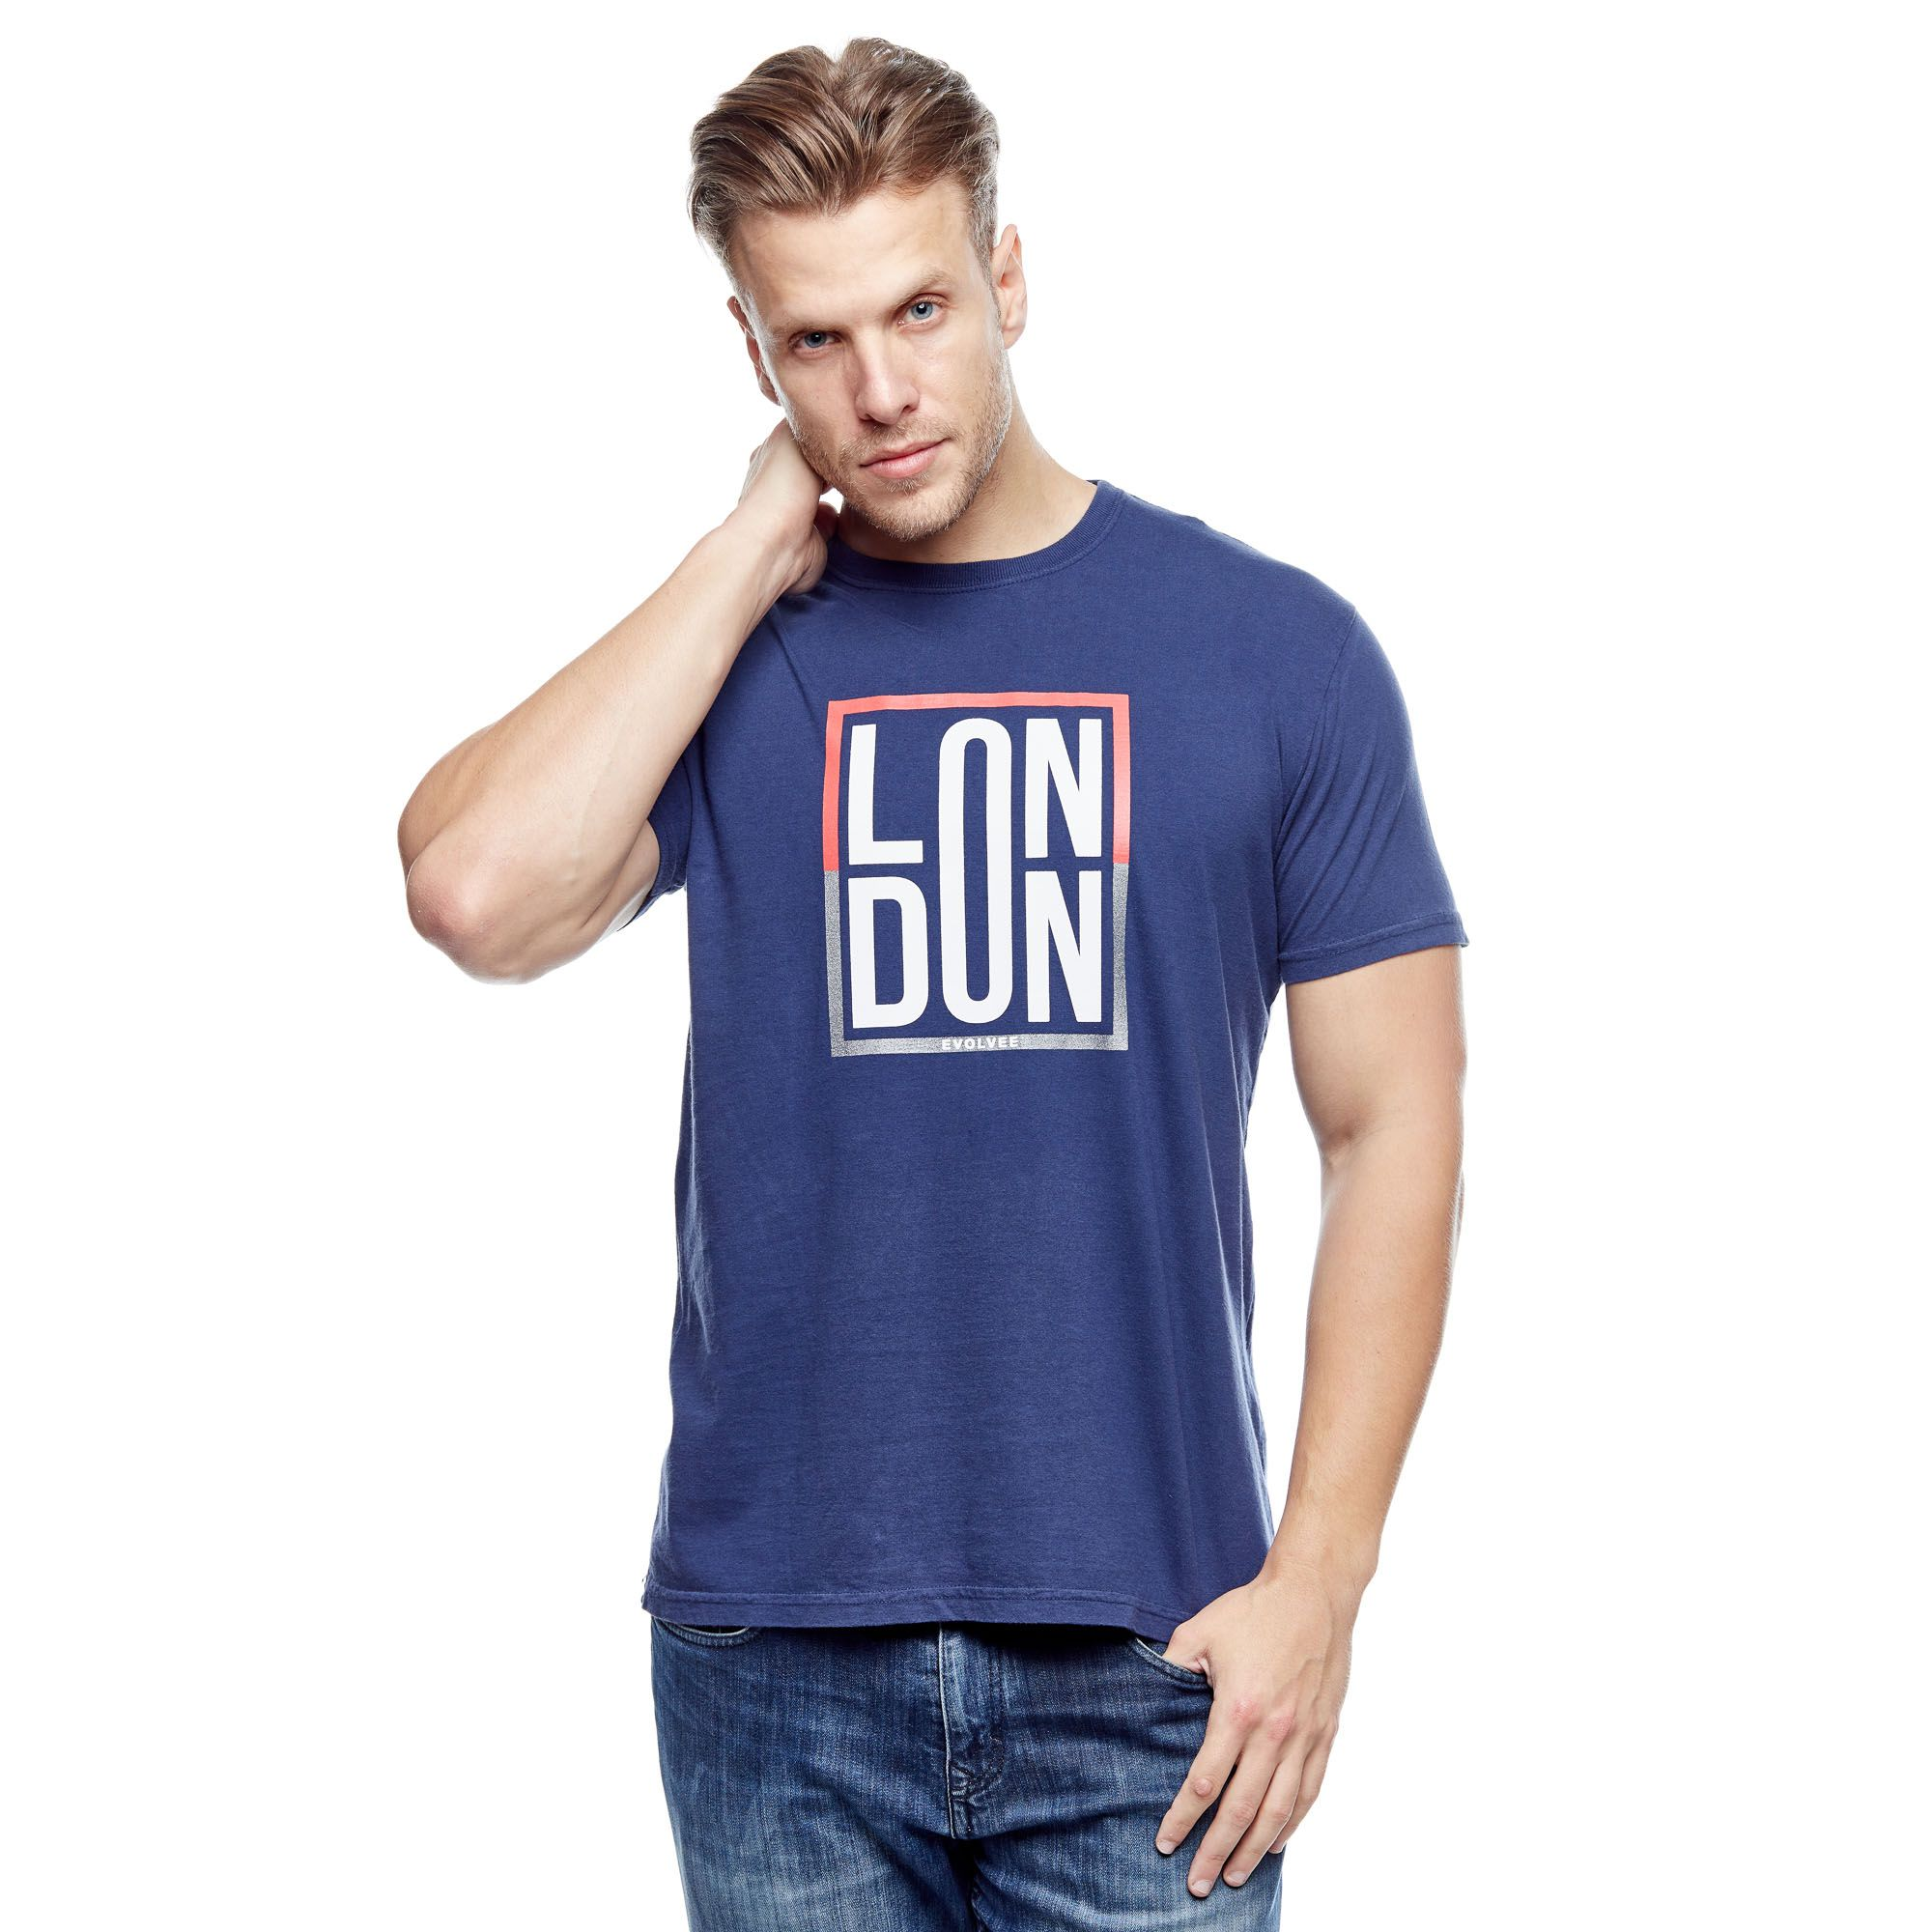 Camiseta Evolvee London Masculina